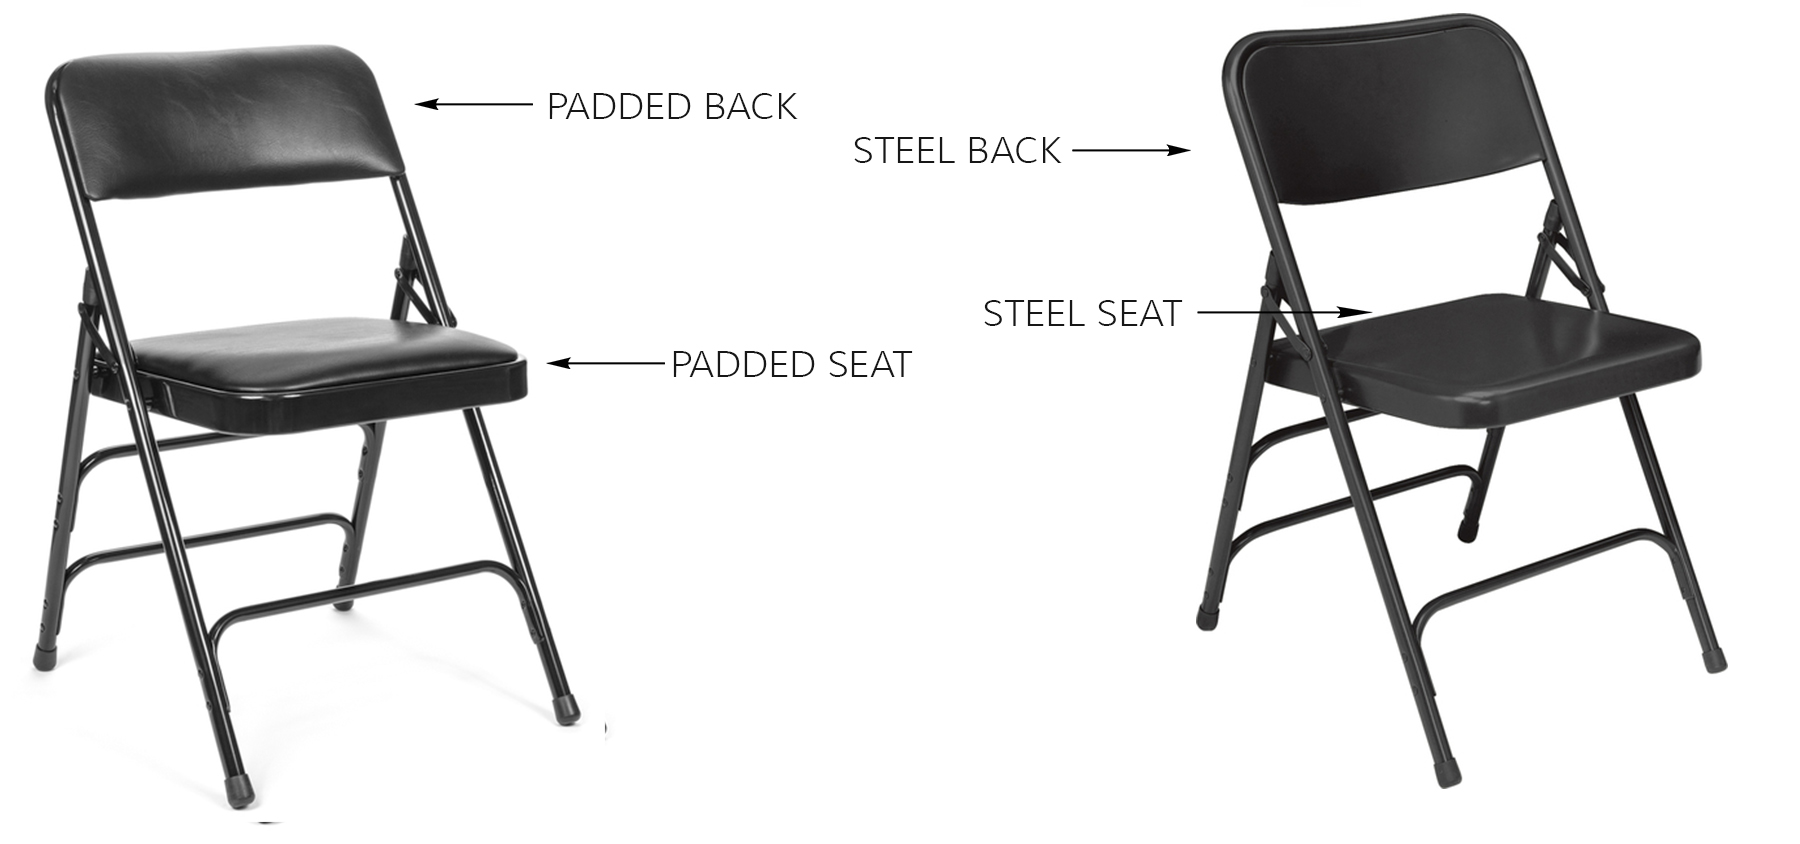 steel-padded-chair-78.jpg